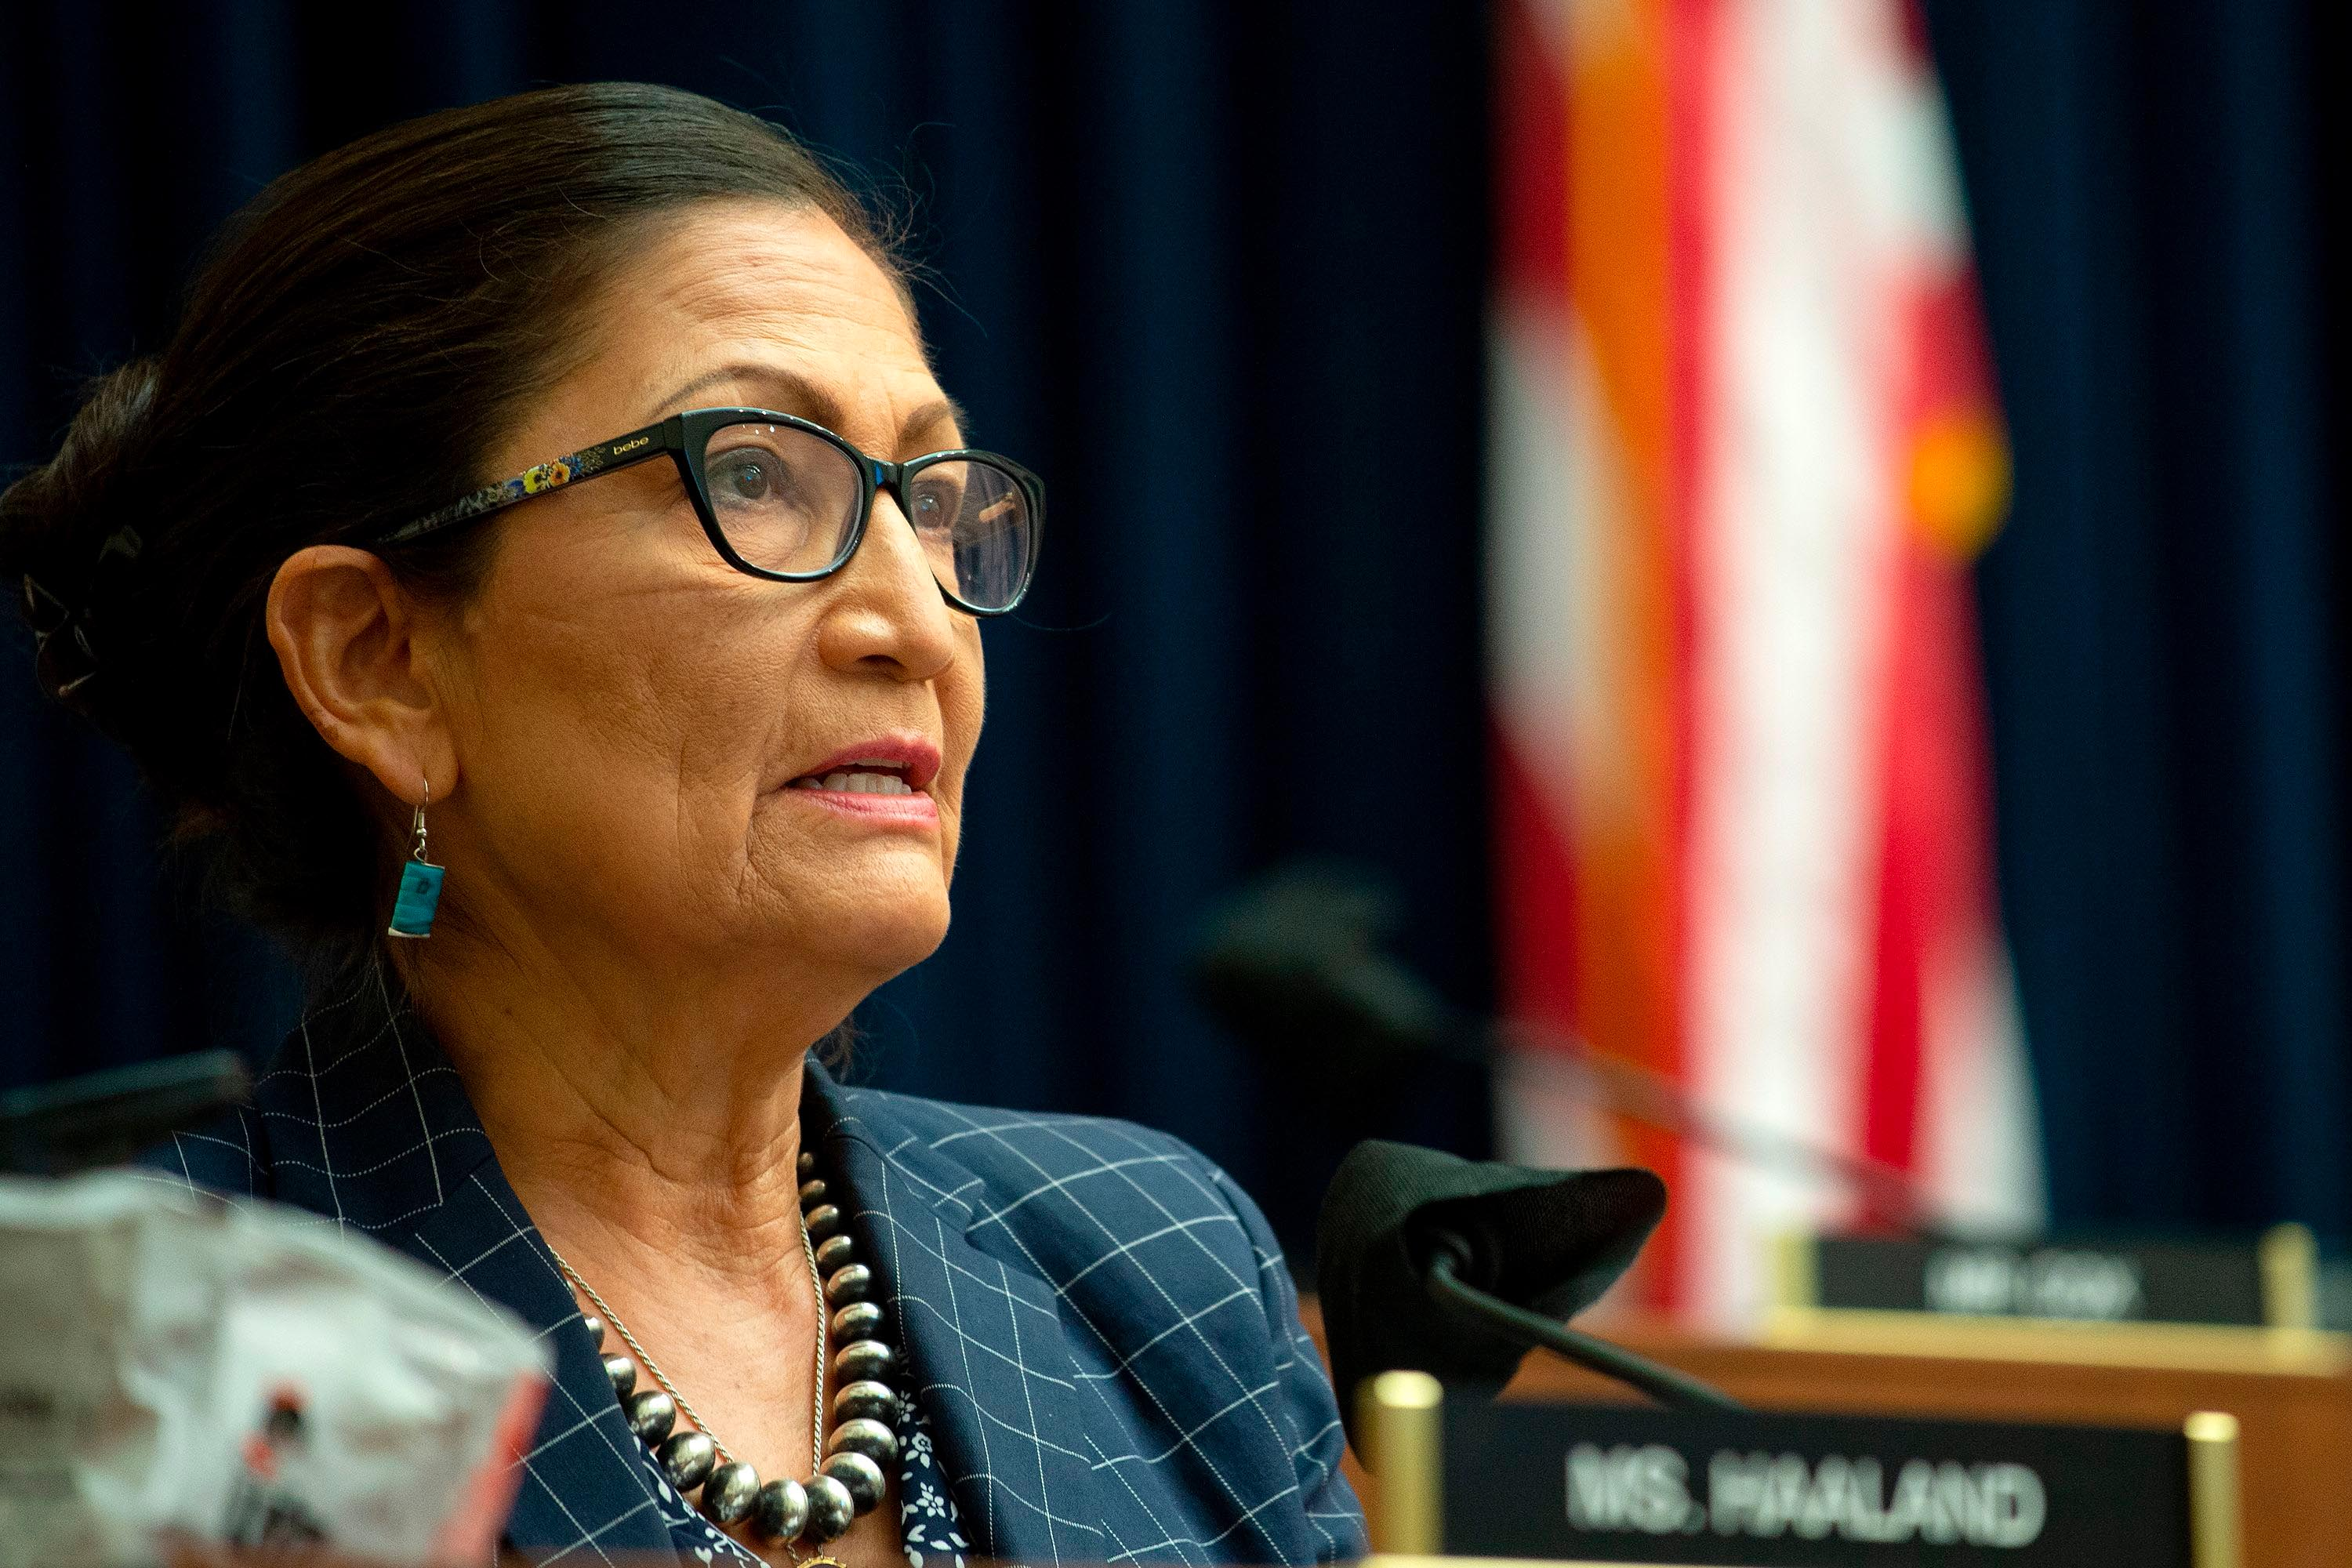 Haaland grilled over past criticism of Republicans at confirmation hearing